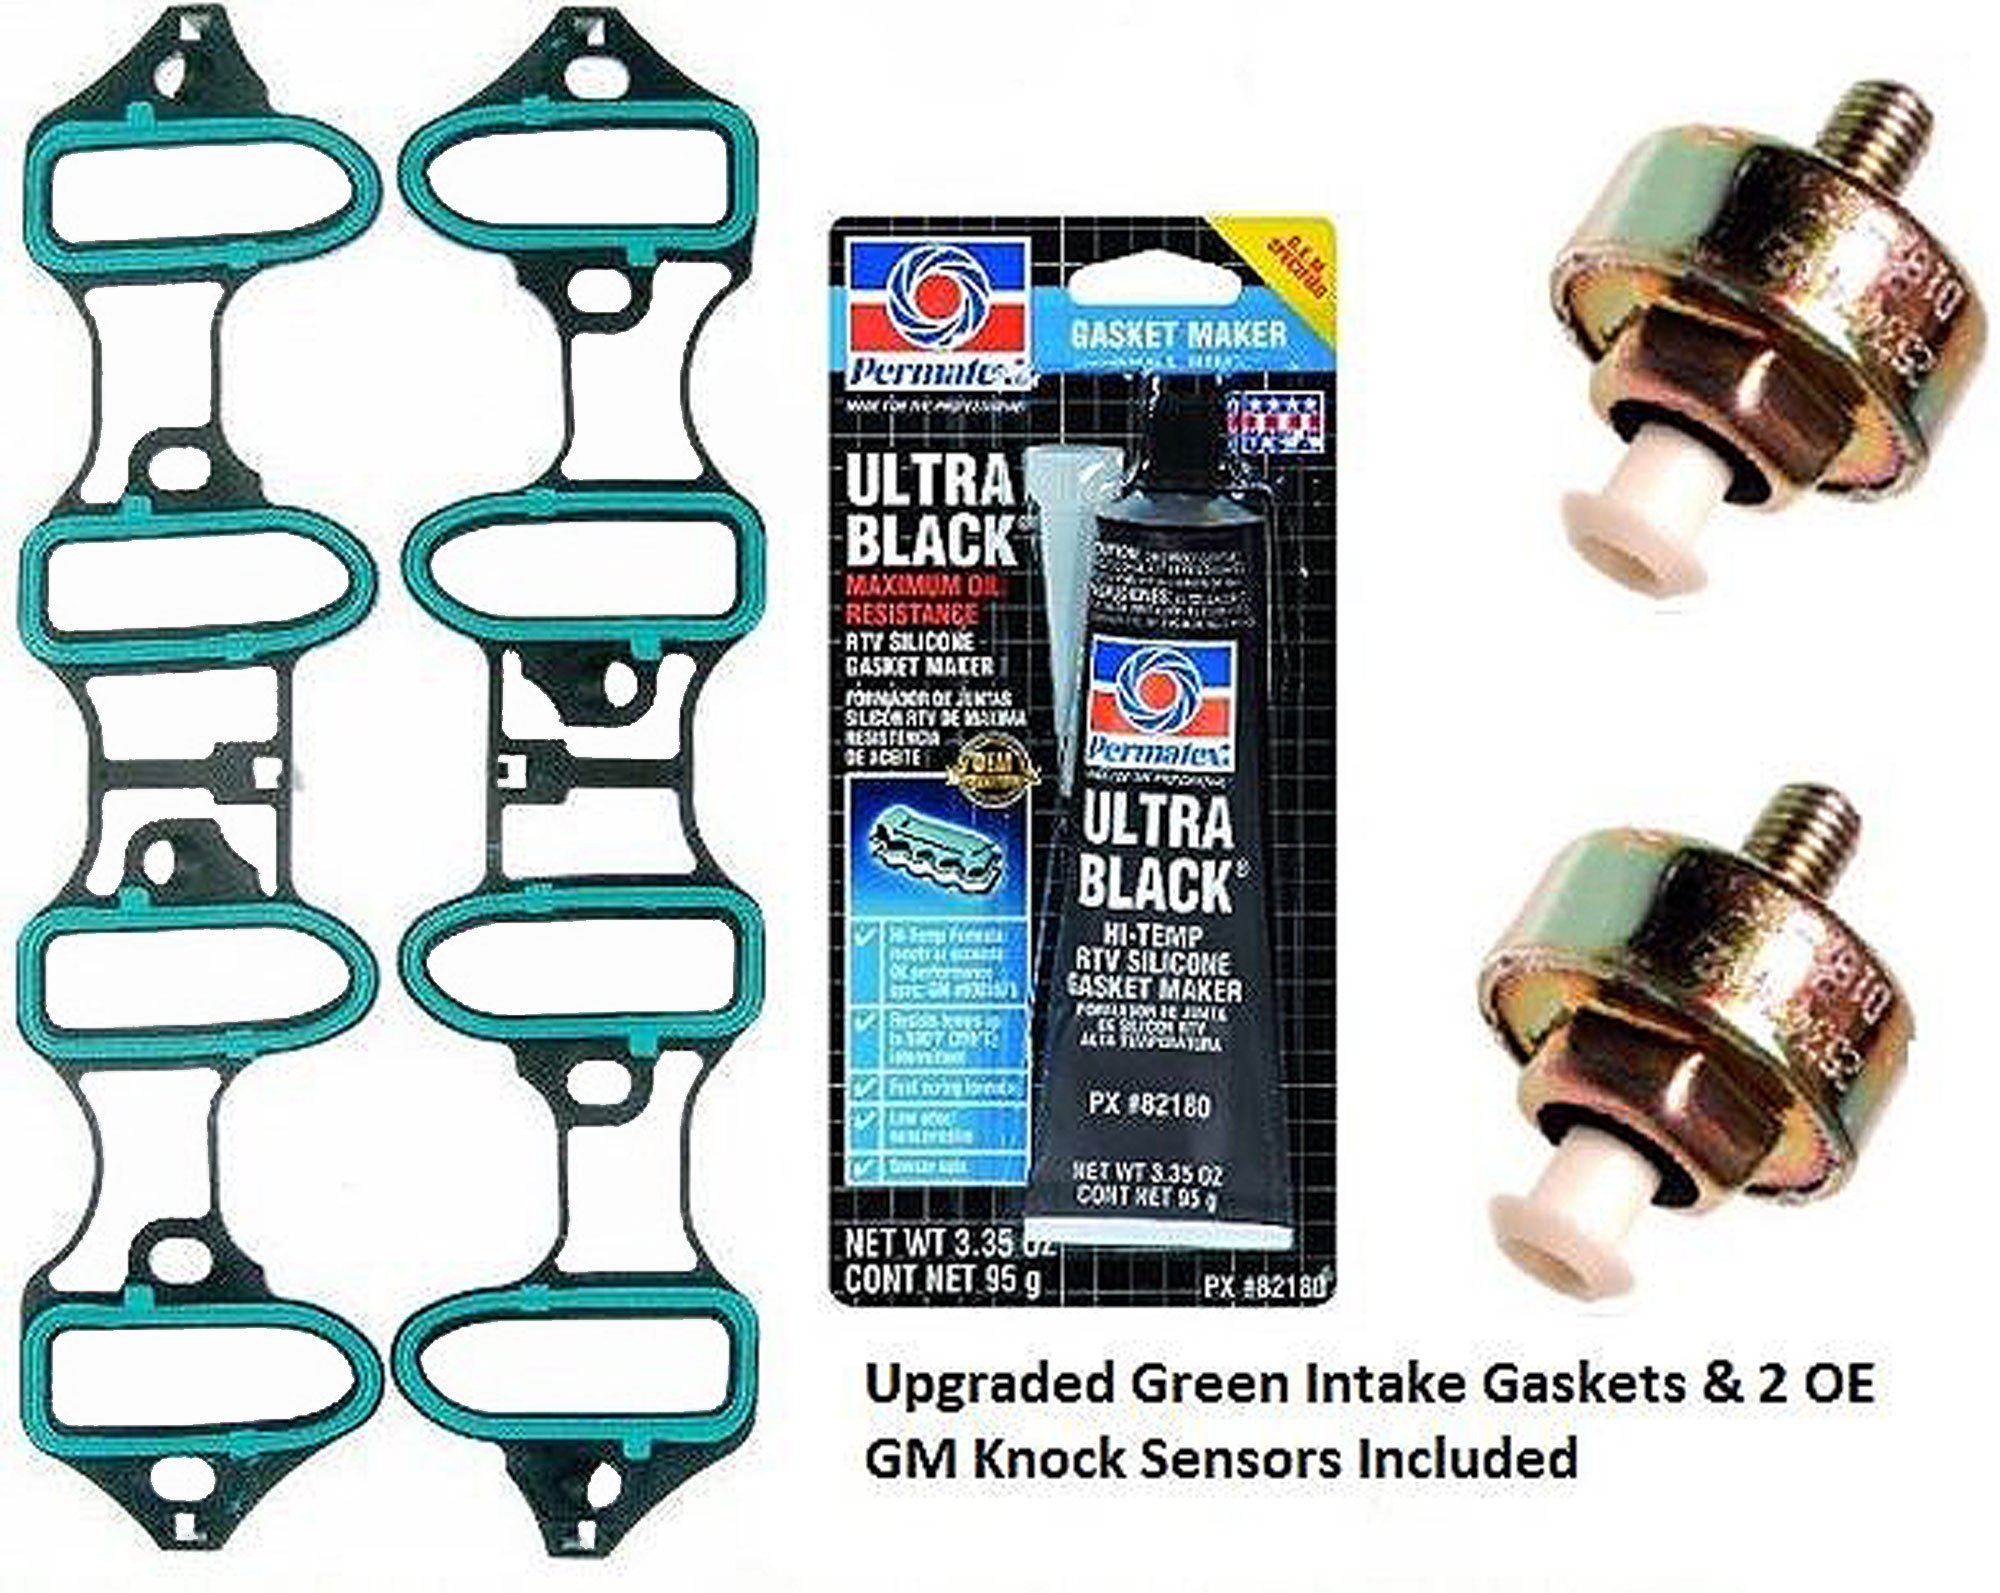 APDTY 89060413-TSB2 Intake Manifold Leak Repair Kit Includes Upgraded Green Gaskets 2 Knock Sensors & Sealant (All ACDelco Parts; Bolts Not Included; Repairs TSB 02-06-04-023A; Solves DTC P0332) by APDTY